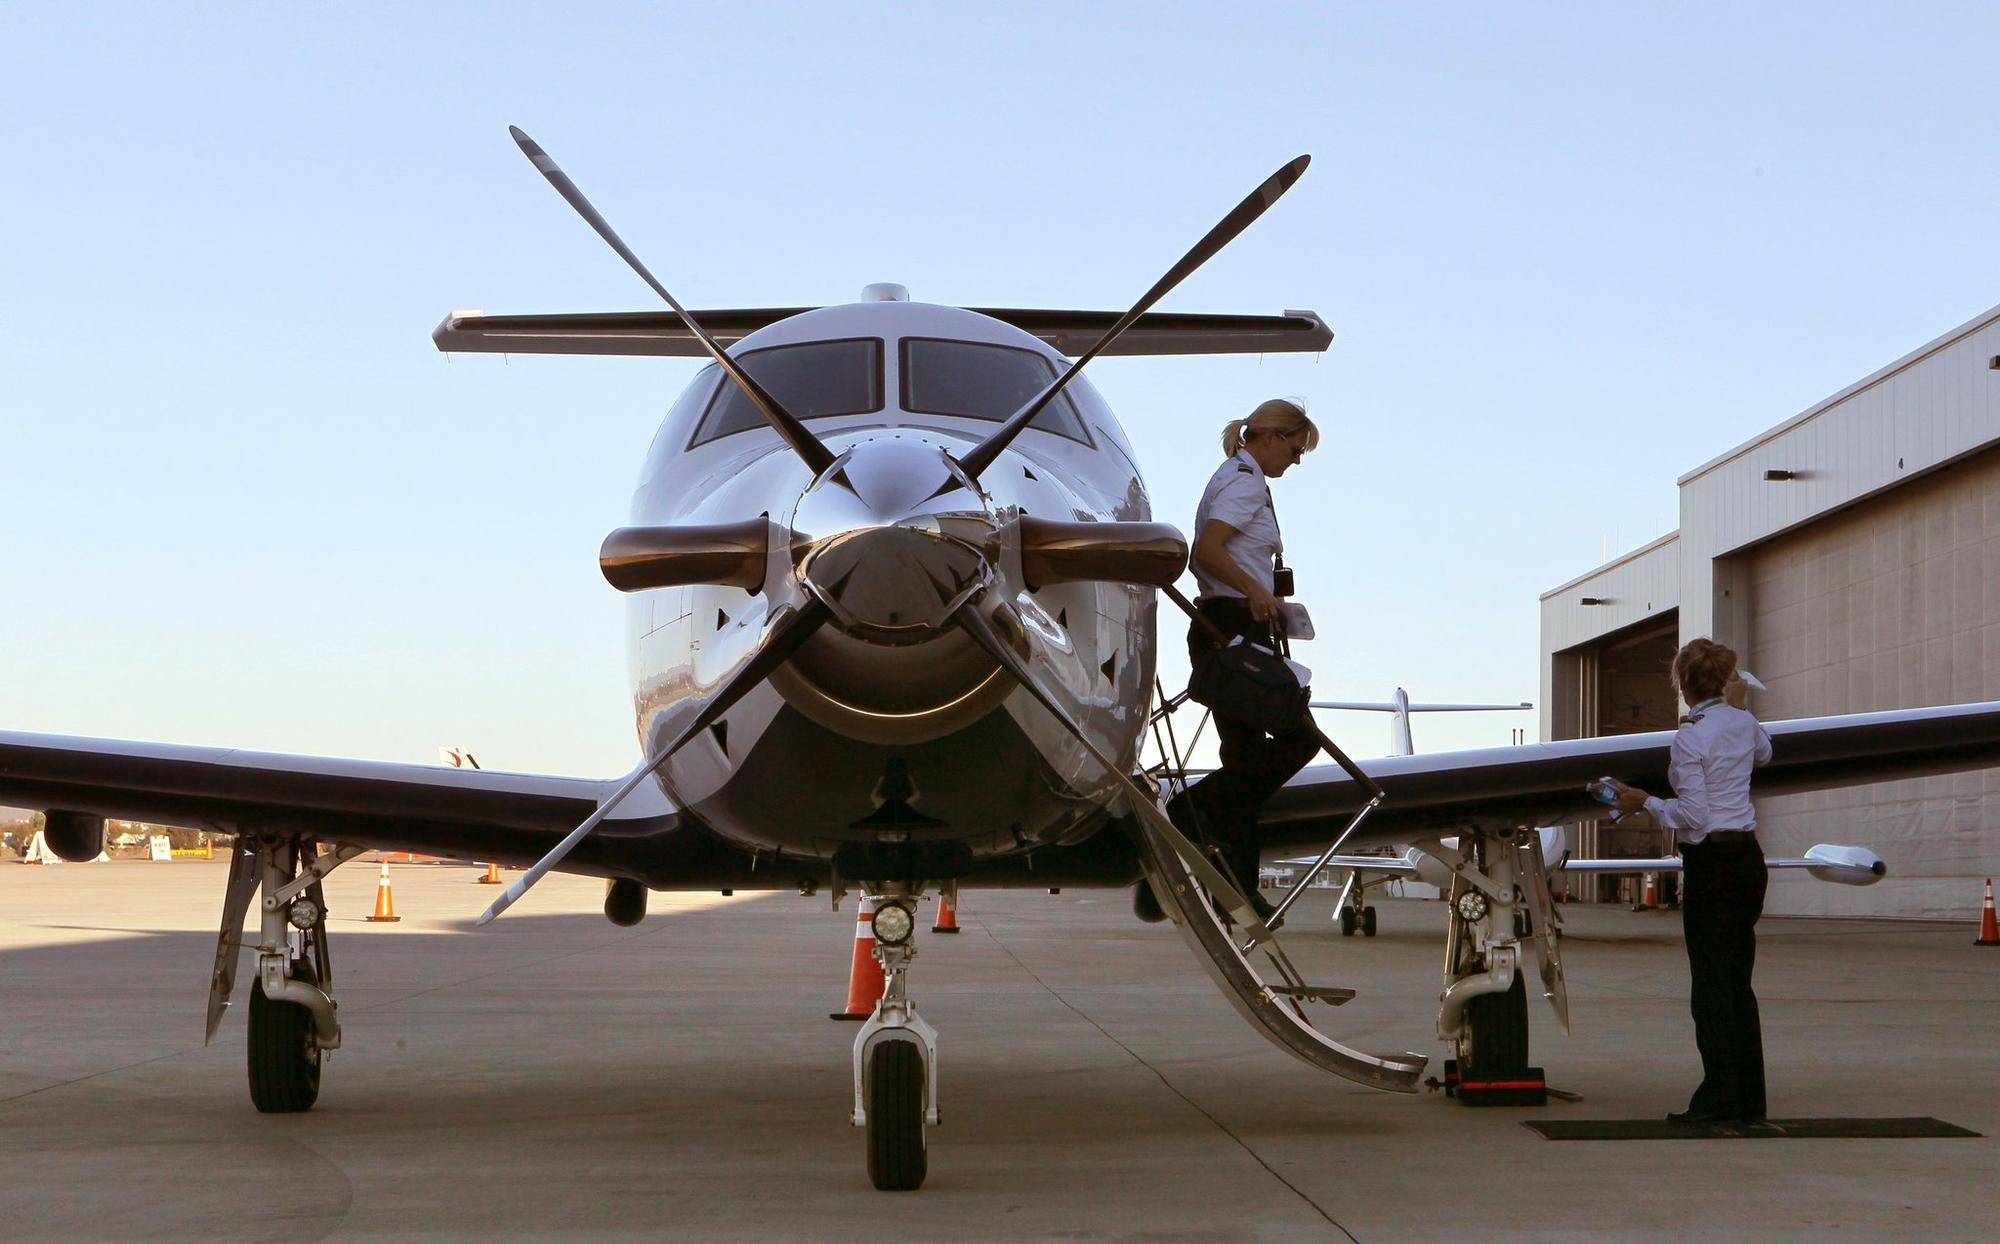 At the Premier Jet terminal at McClellan-Palomar Airport Surf Air Captain Arlene Wilske exits the plane she helped pilot there from Santa Barbara.